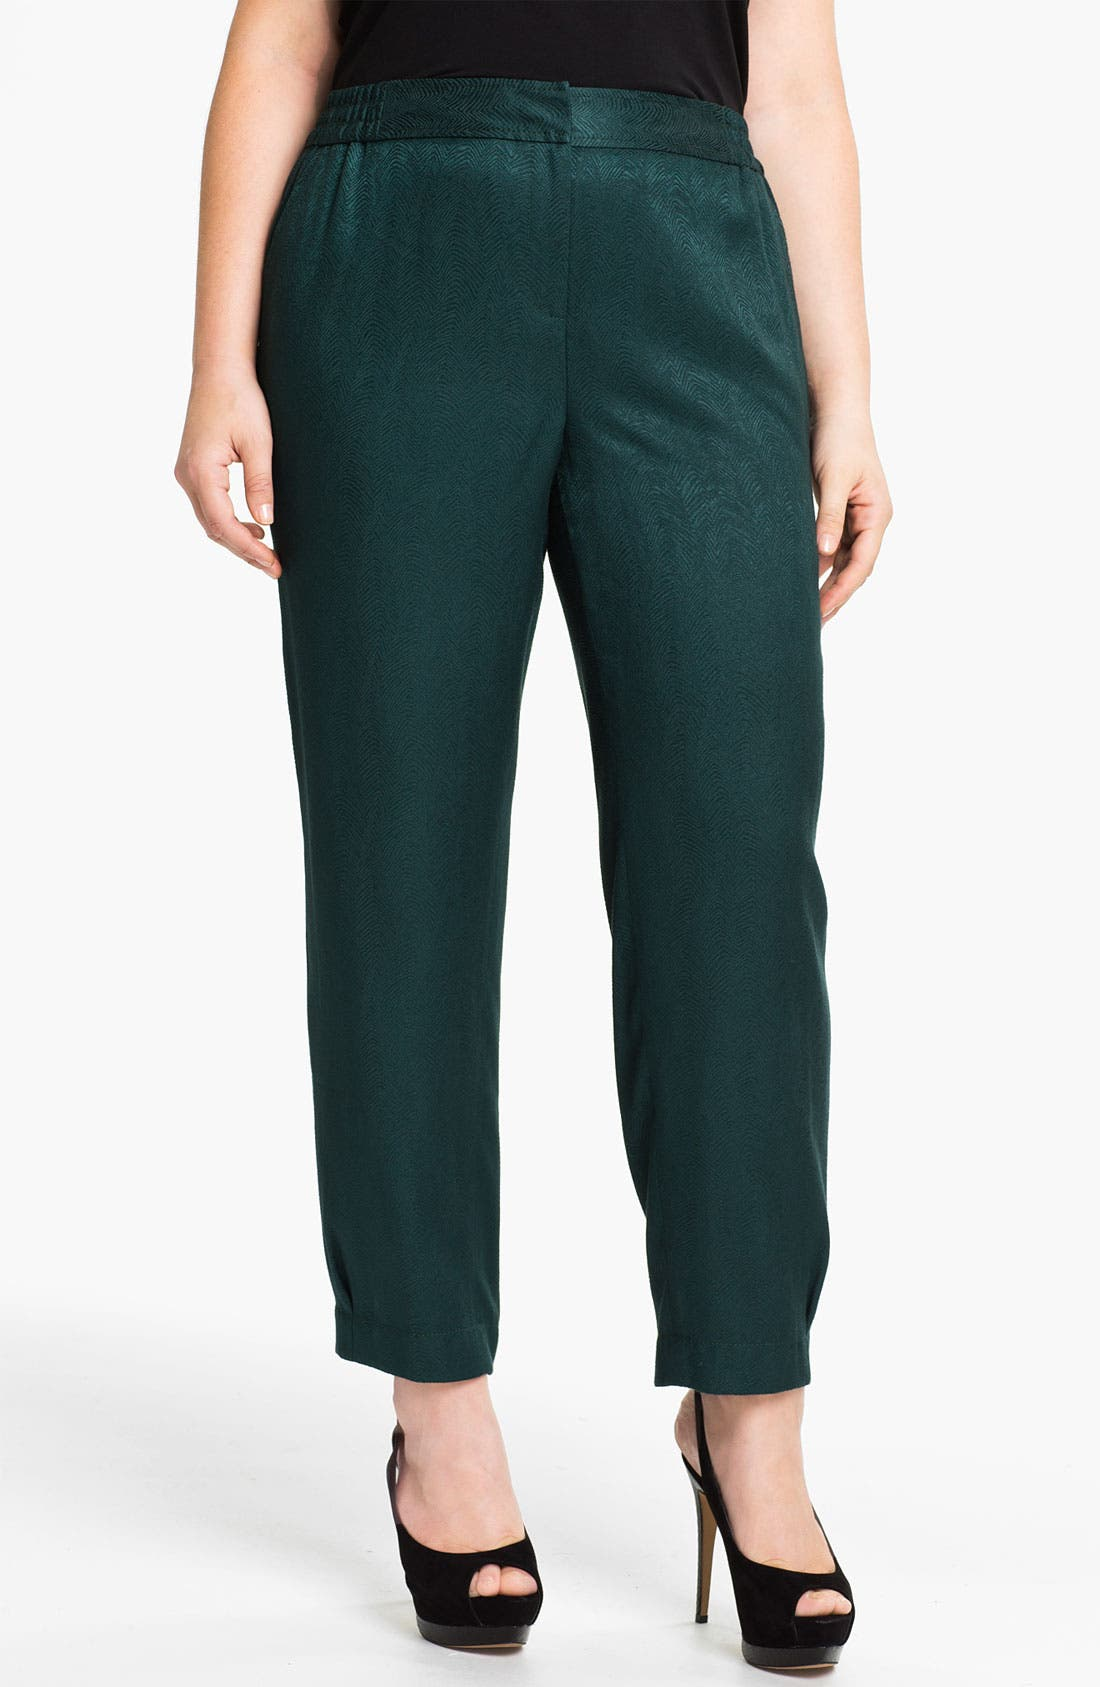 Alternate Image 1 Selected - Sejour Slim Jacquard Pants (Plus)